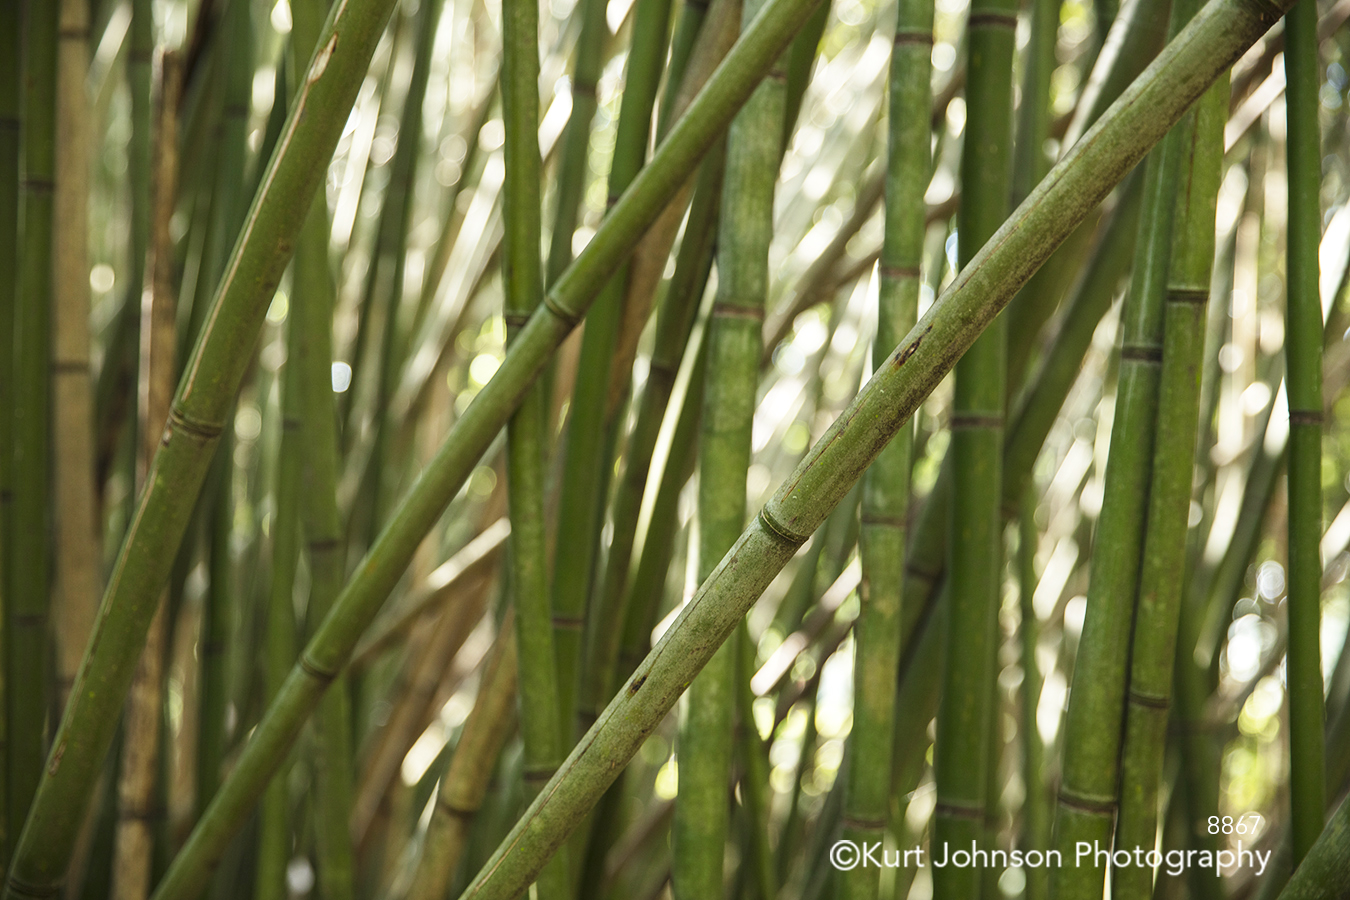 tall green grass bamboo lines pattern close up detail